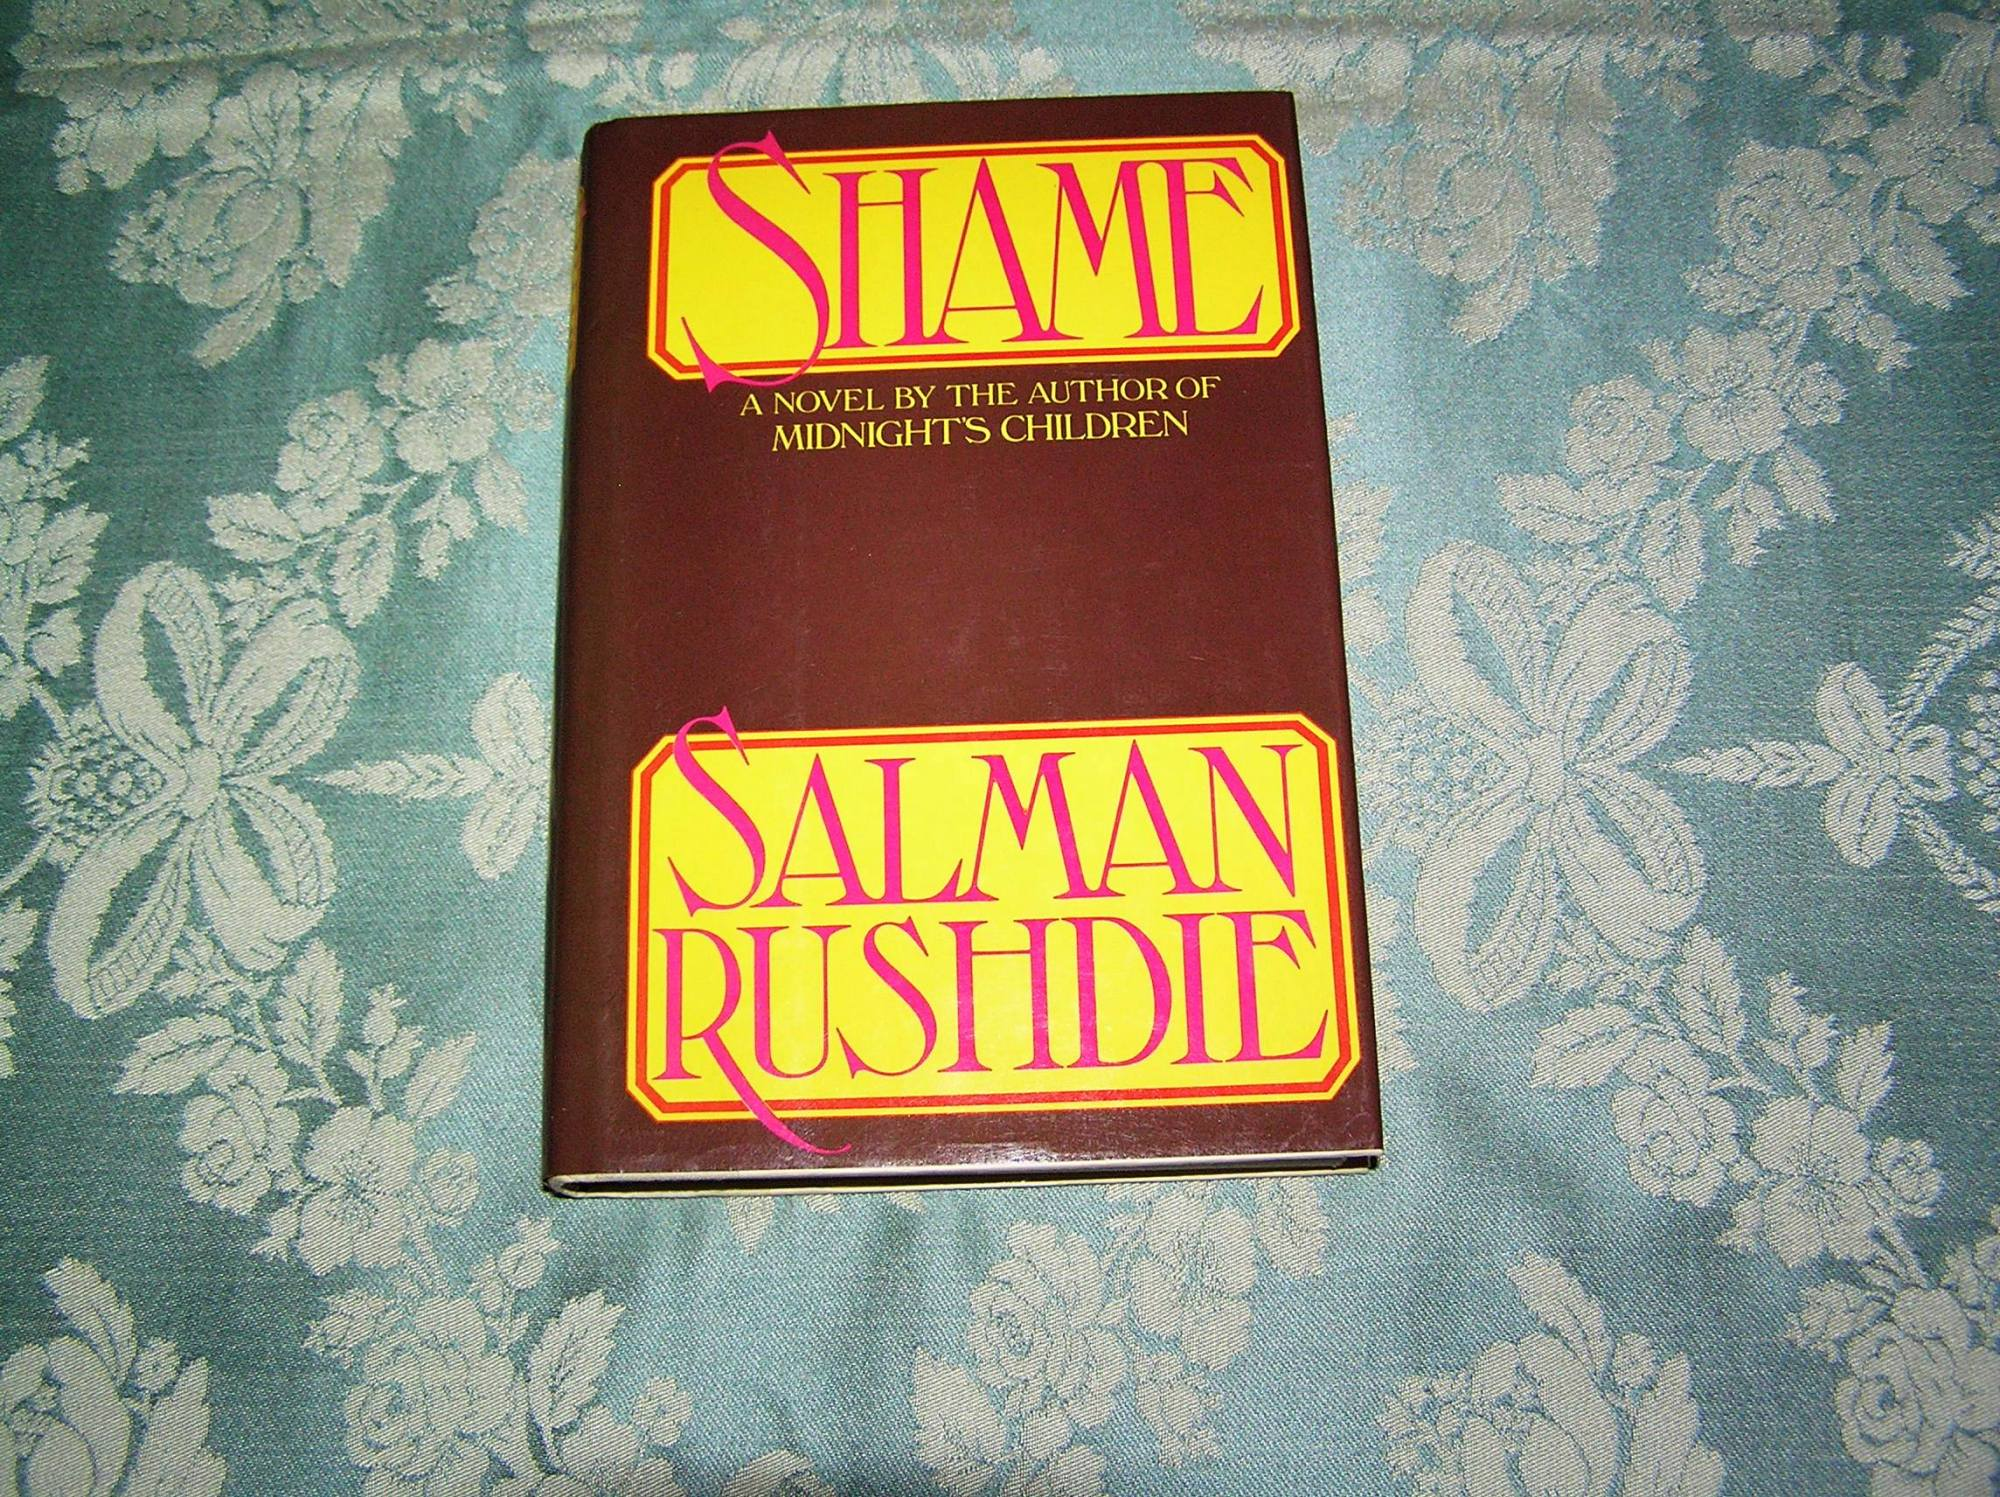 an analysis of shame by salman rushdie Salman rushdie, shame (knopf, 1983 vintage, 1989) the concept of sharam underlies this complex and quietly compelling novel sharam translates inadequately into.